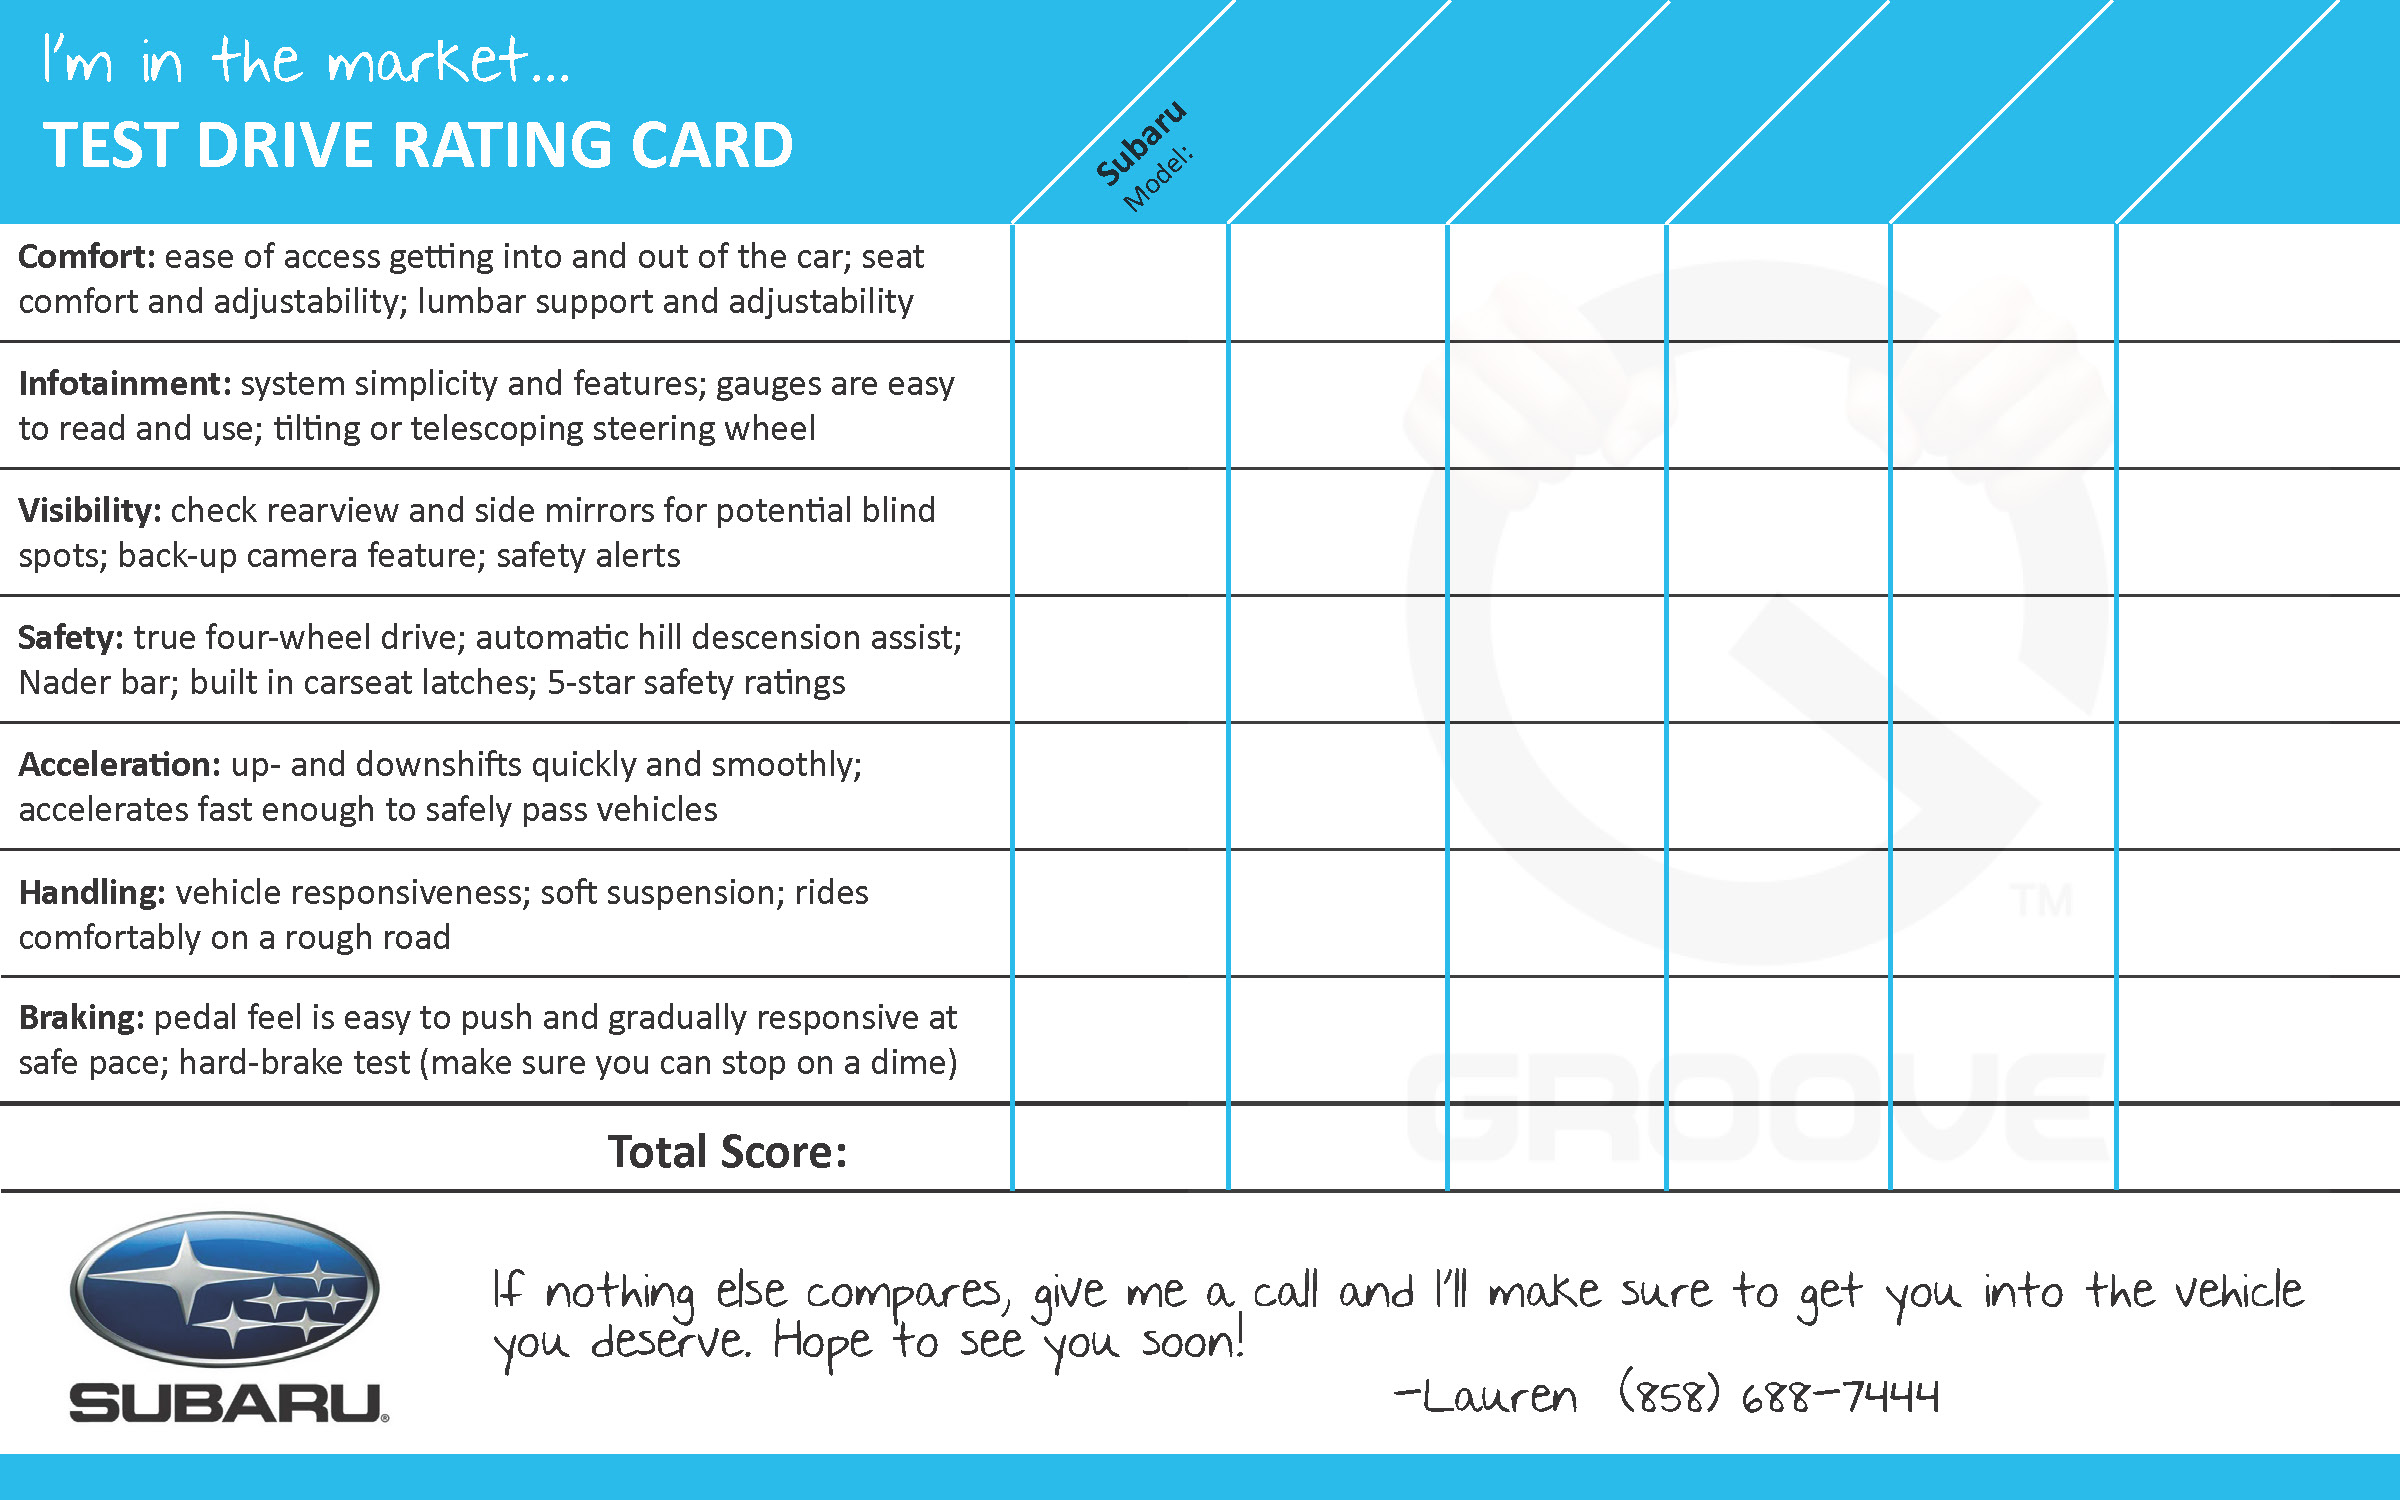 Test Drive Rating Card_Groove Subaru_8x5_FINAL_Page_2